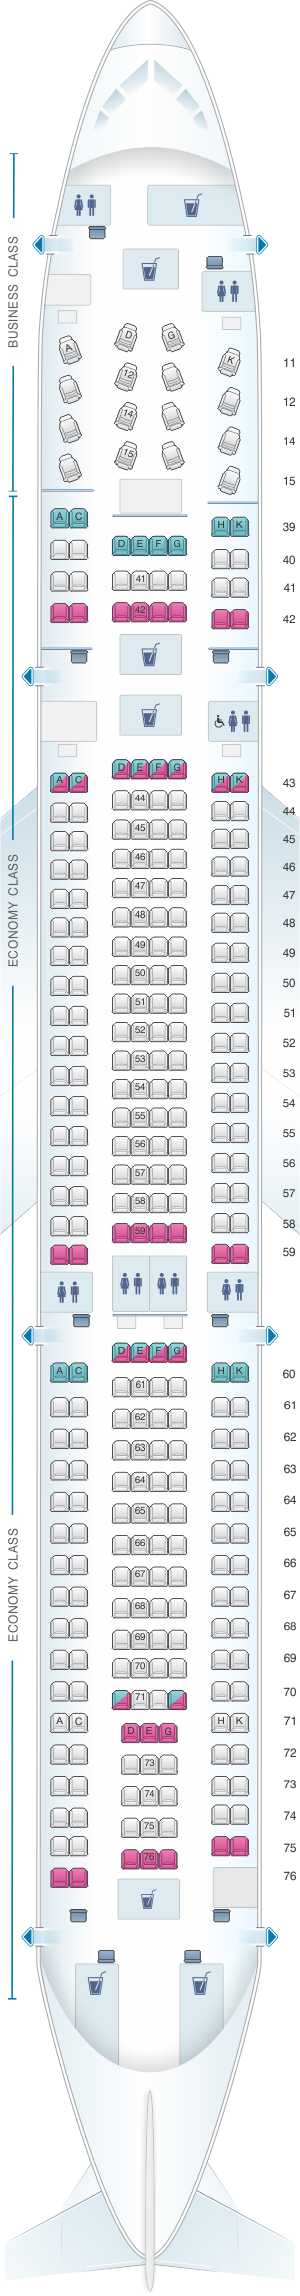 Seat map for Cathay Pacific Airways Airbus A330 300 (33P)